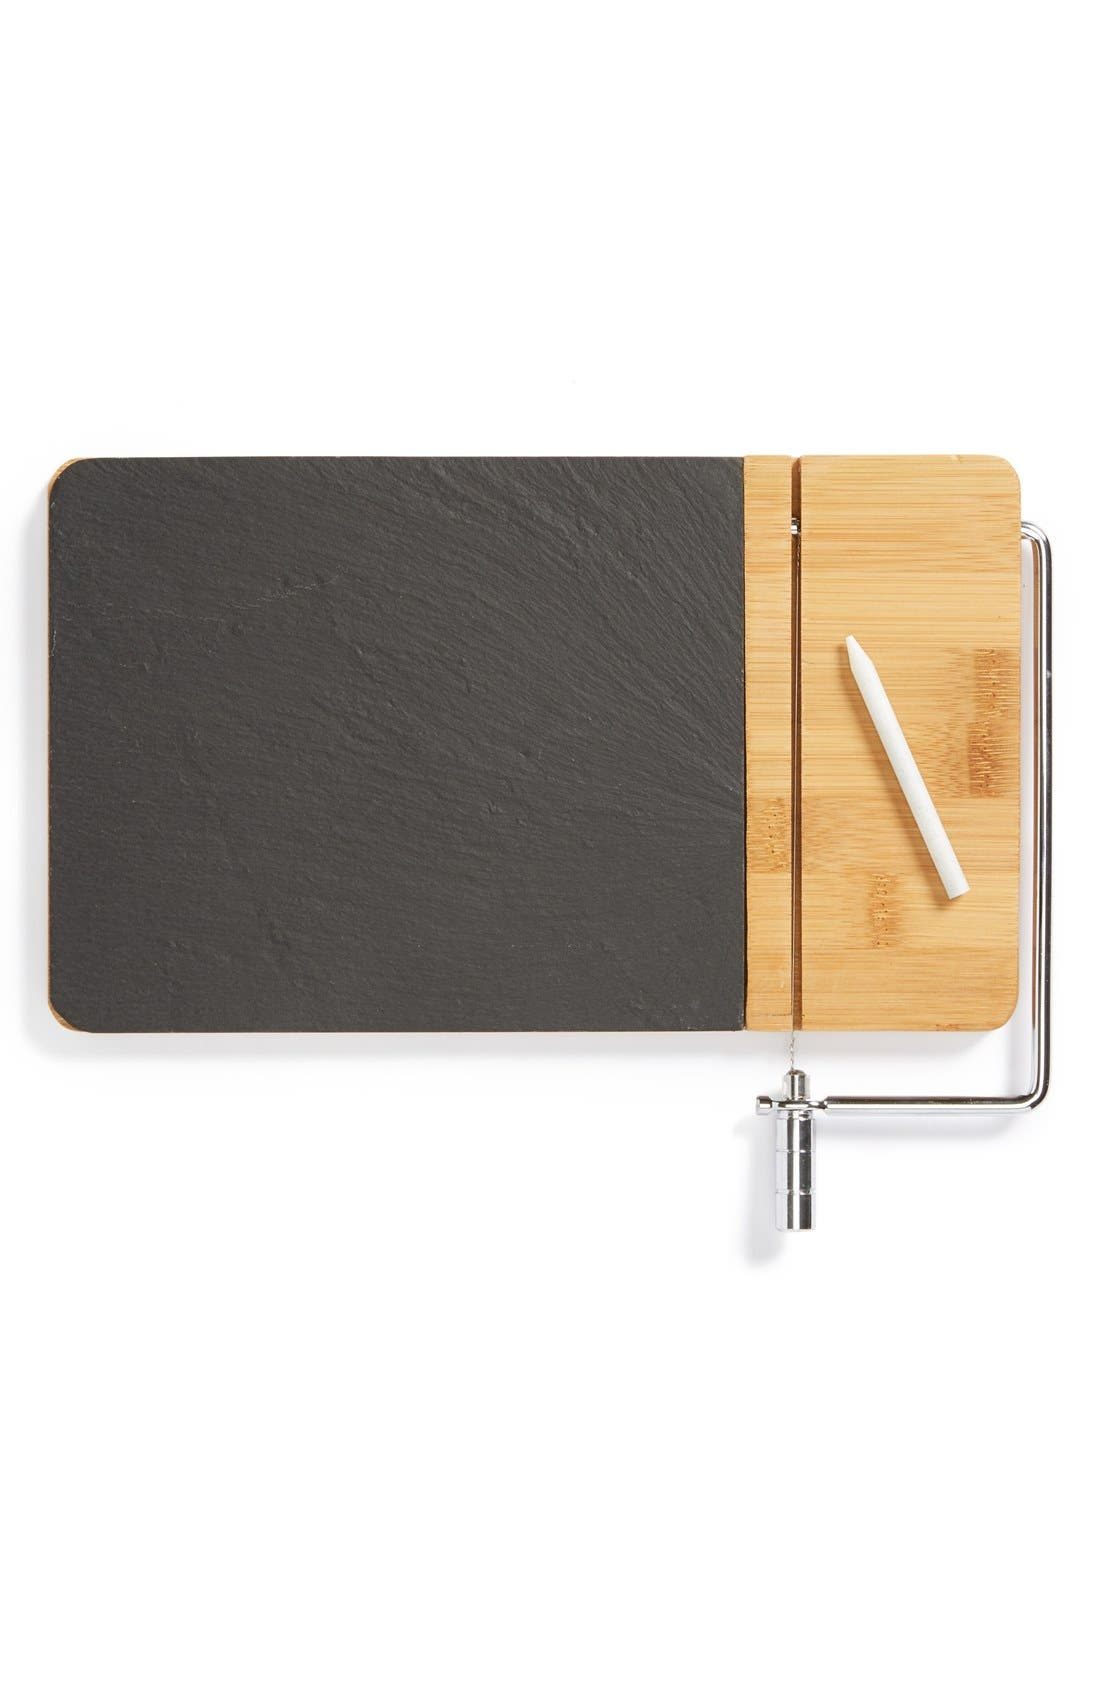 Main Image - Core Home Slate & Bamboo Cheese Board